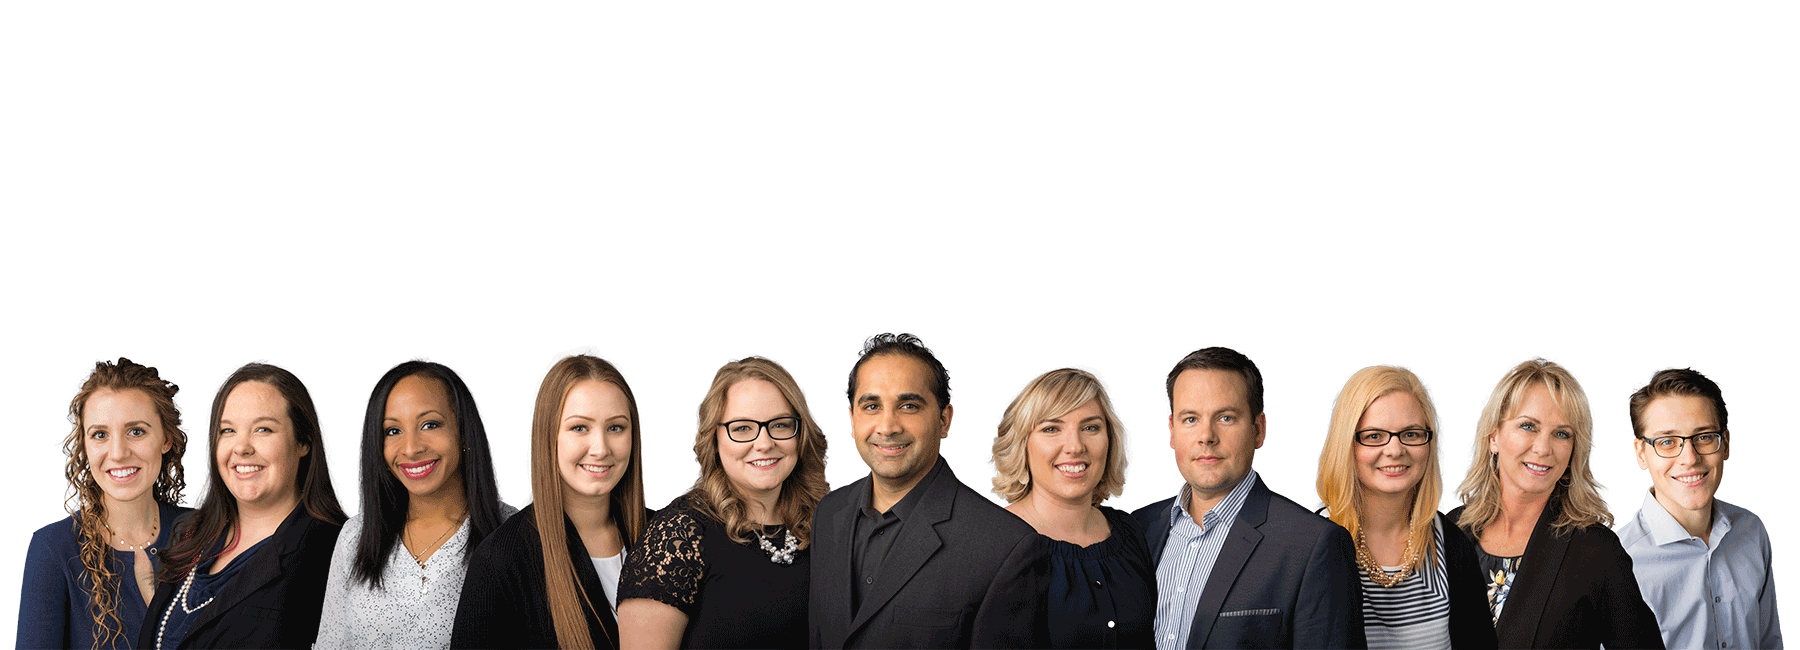 the munir group brantford realtors and brantford real estate agents